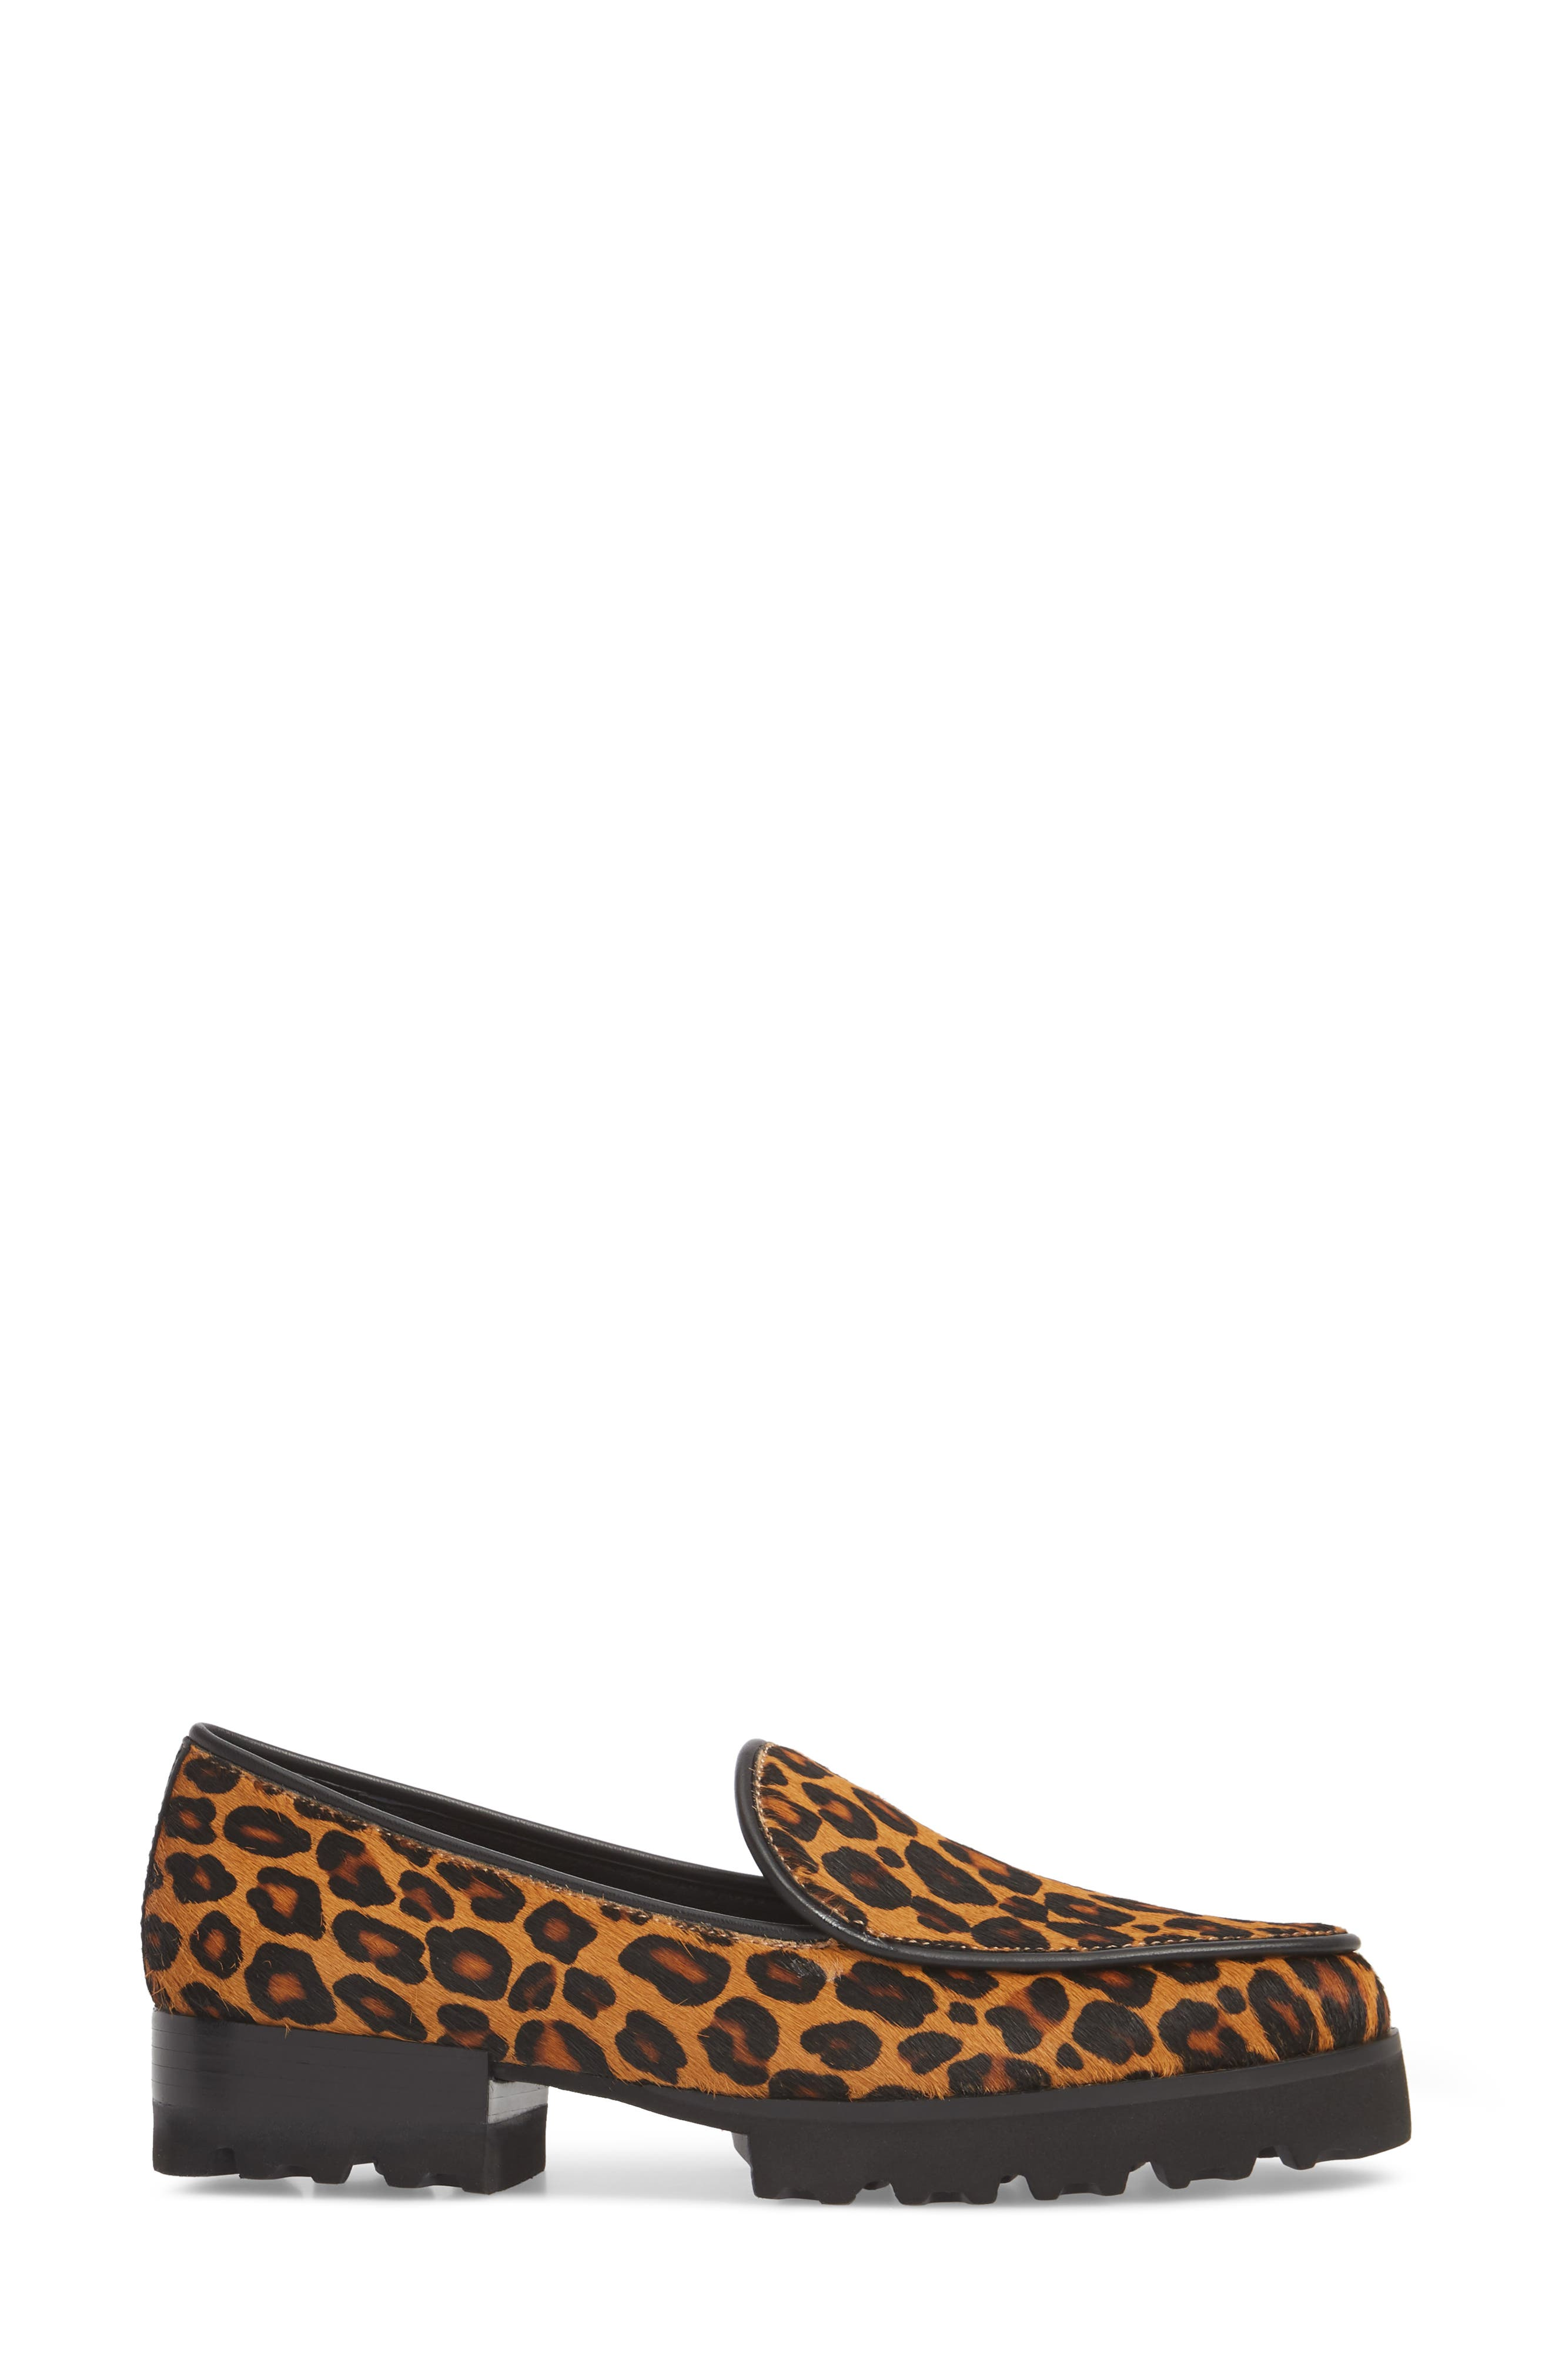 Enza Lug Sole Loafer,                             Alternate thumbnail 3, color,                             LEOPARD PRINT HAIRCALF